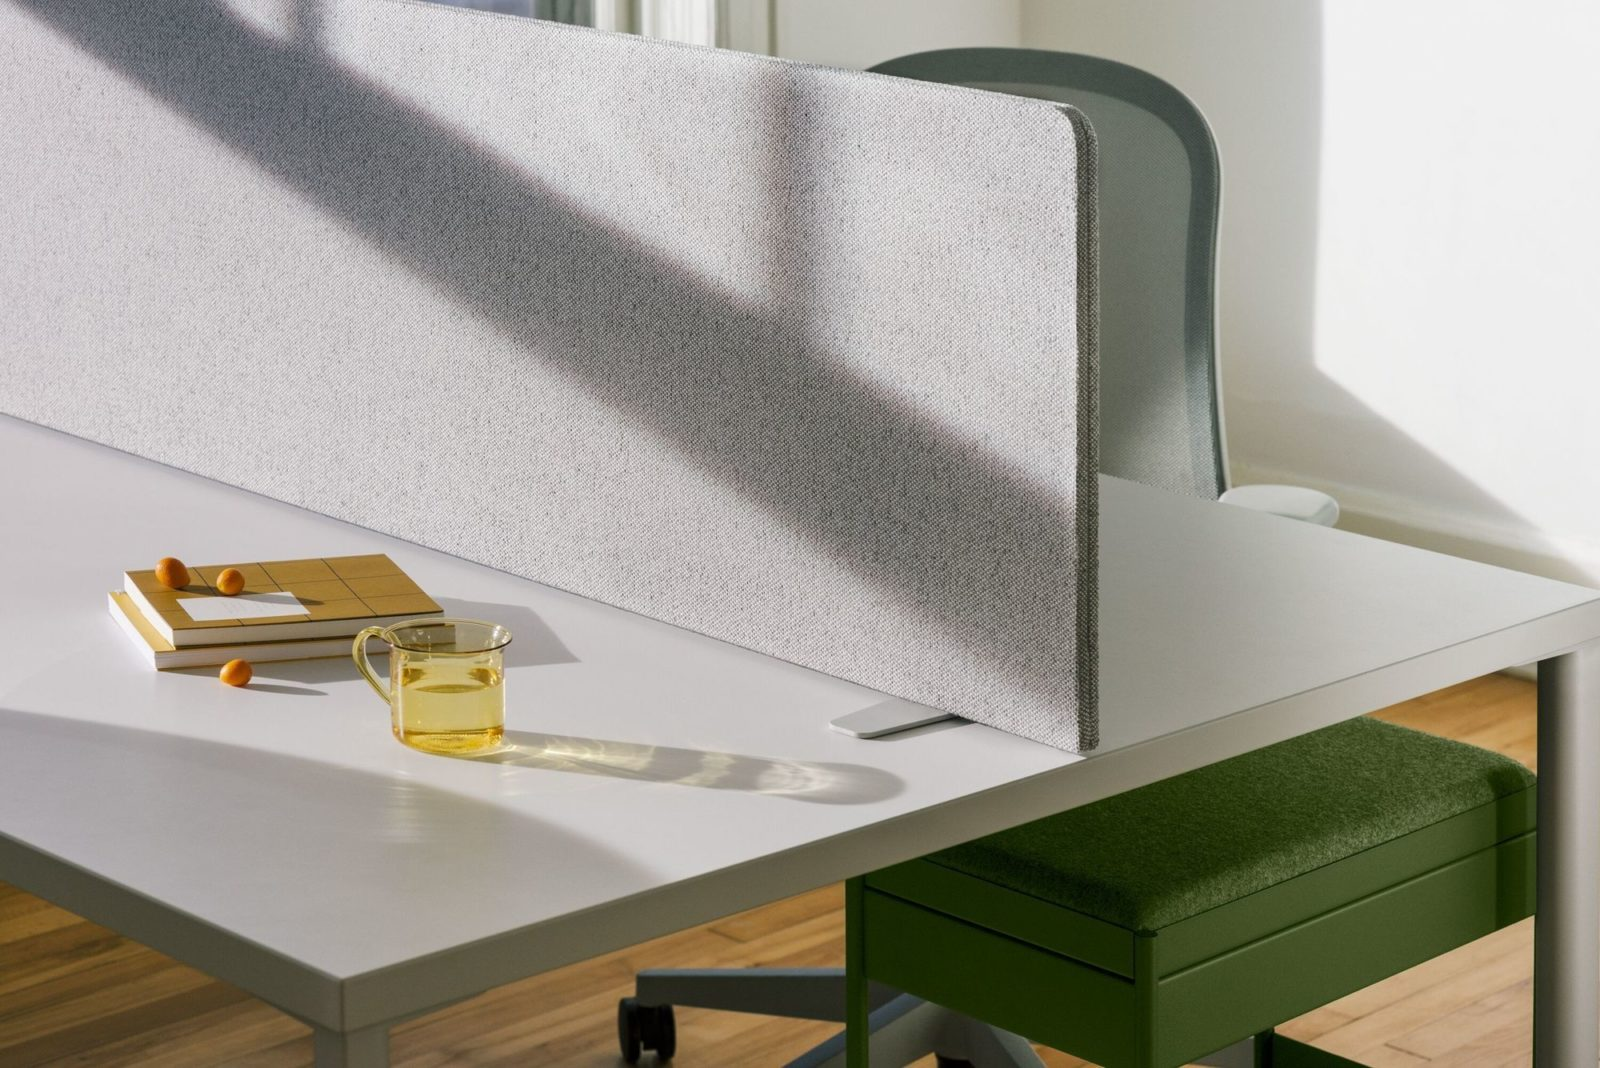 A green individual OE1 Storage Trolley with a cushion top beneath a table divided into two work spaces by a fabric OE1 screen.